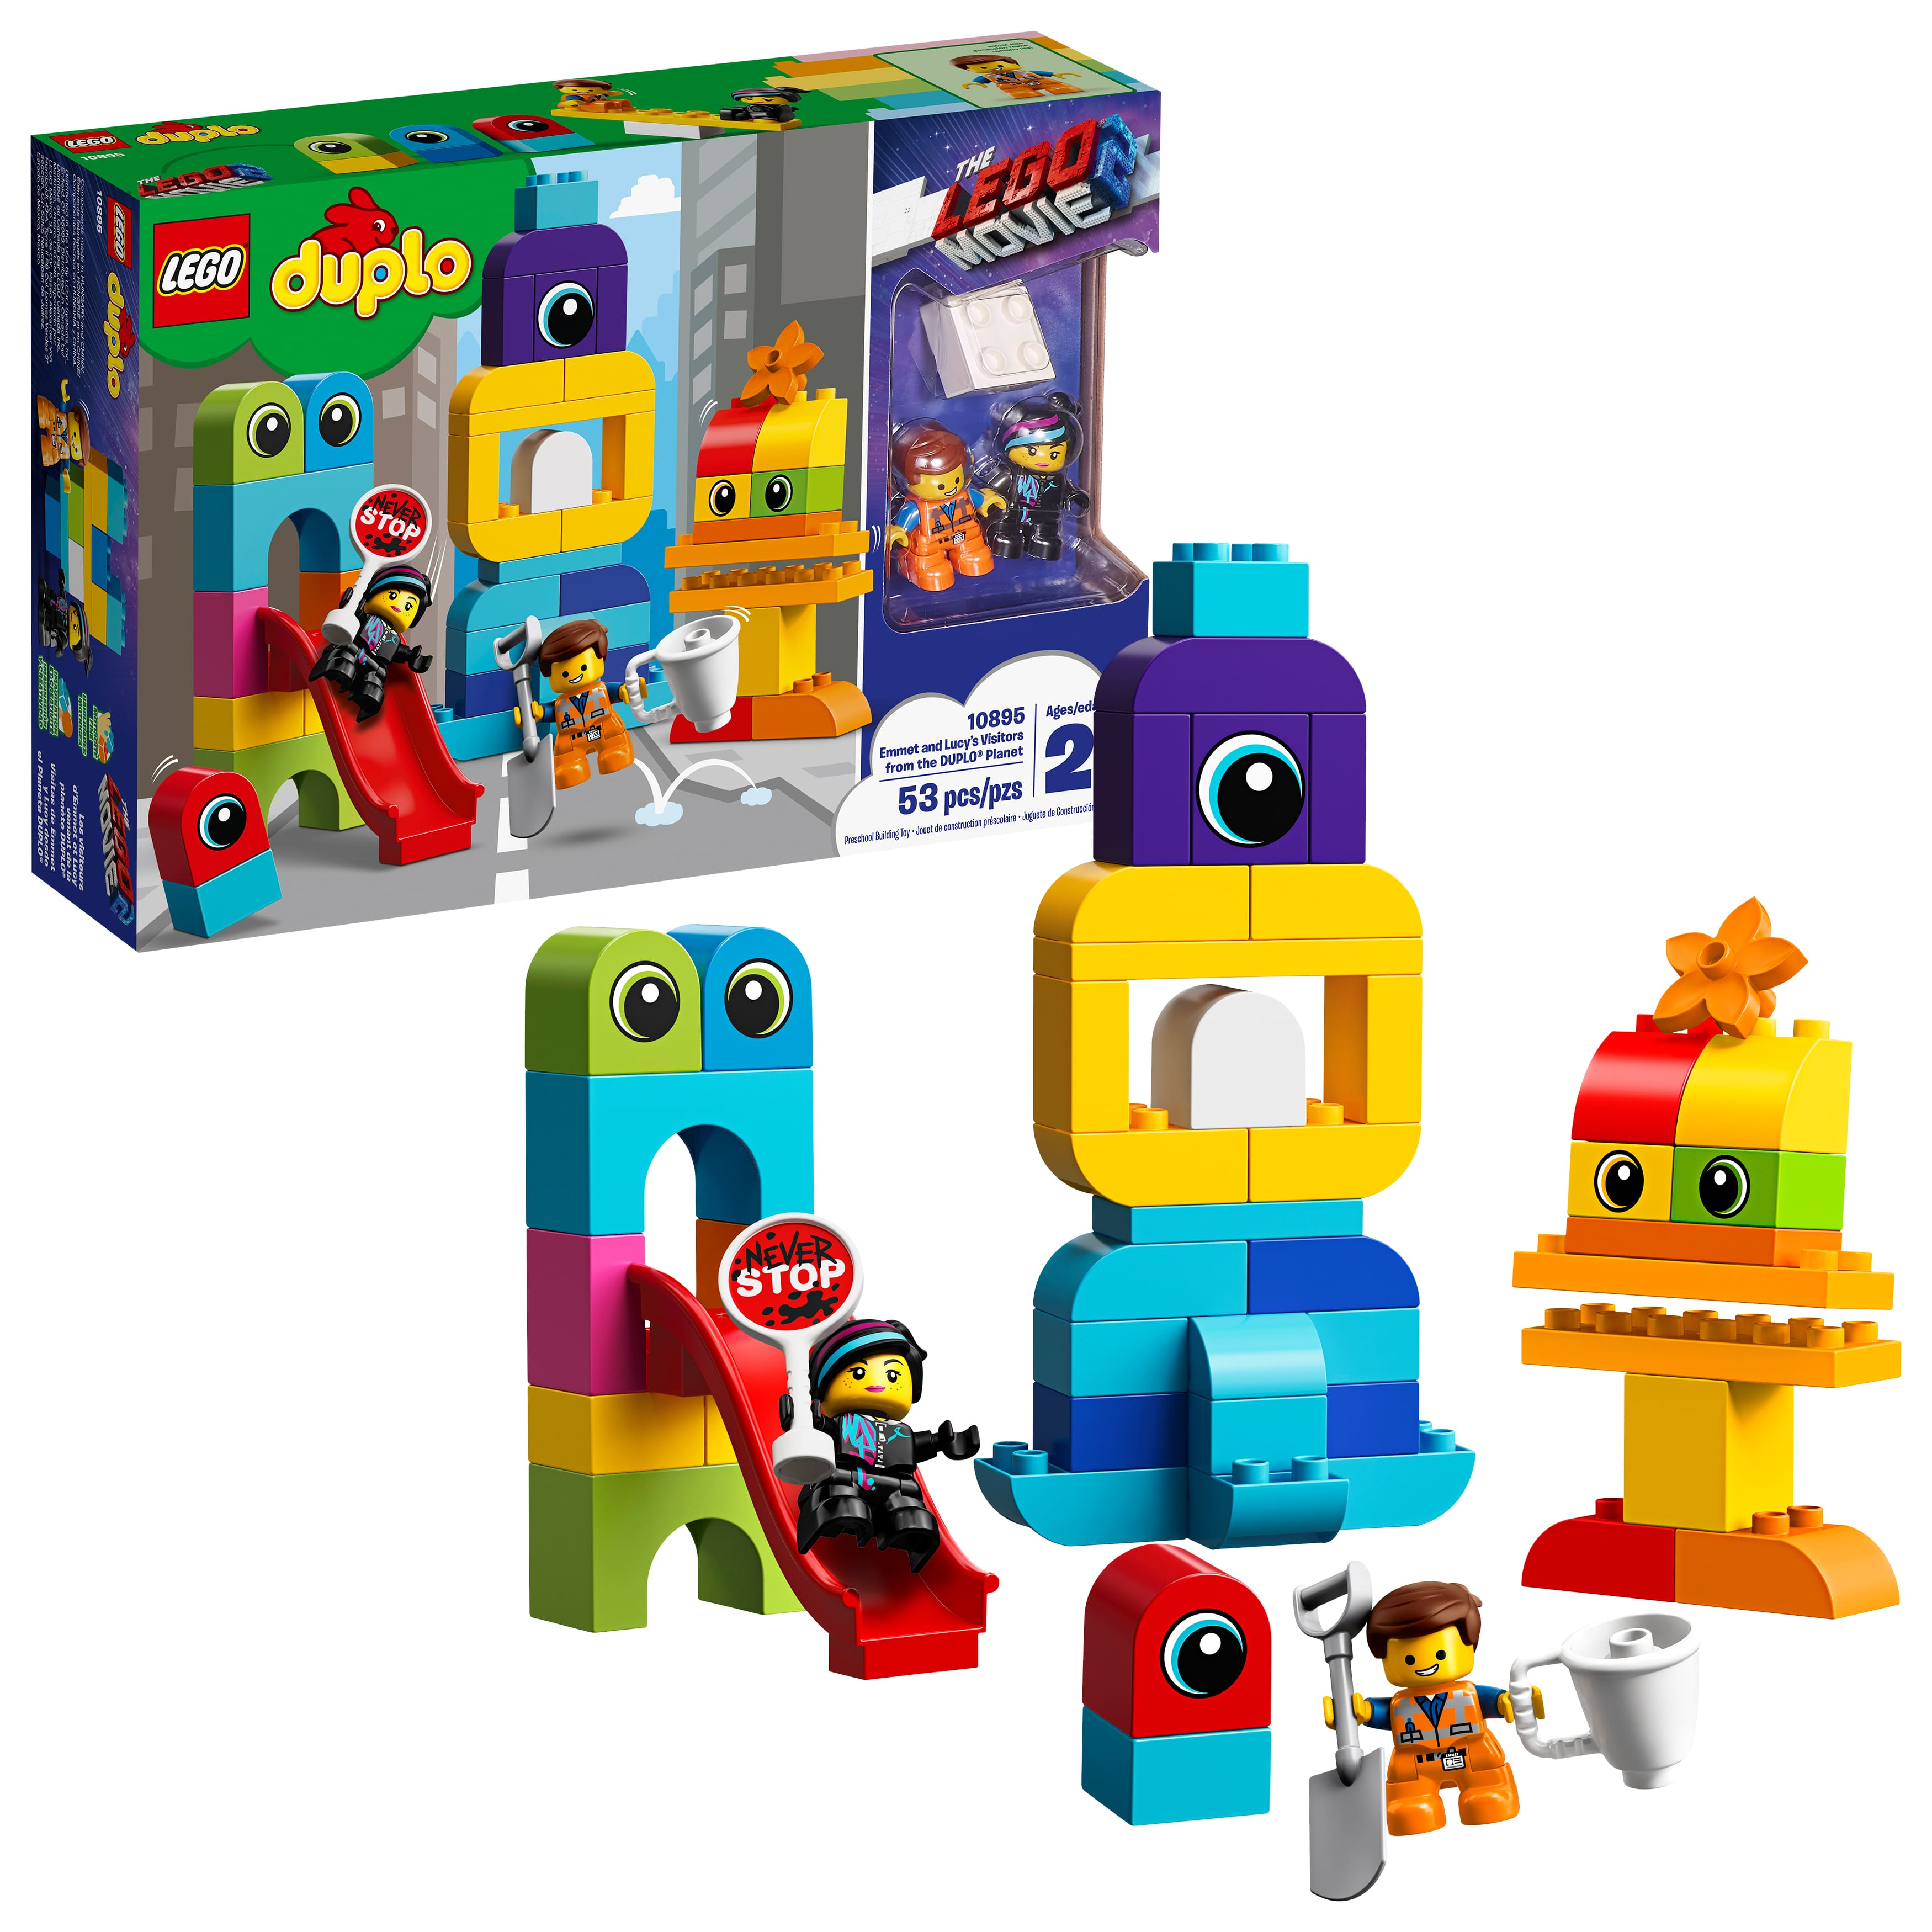 The Movie 2 Visitors Duplo Emmet Lego From And Lucy's 2YWH9EDI